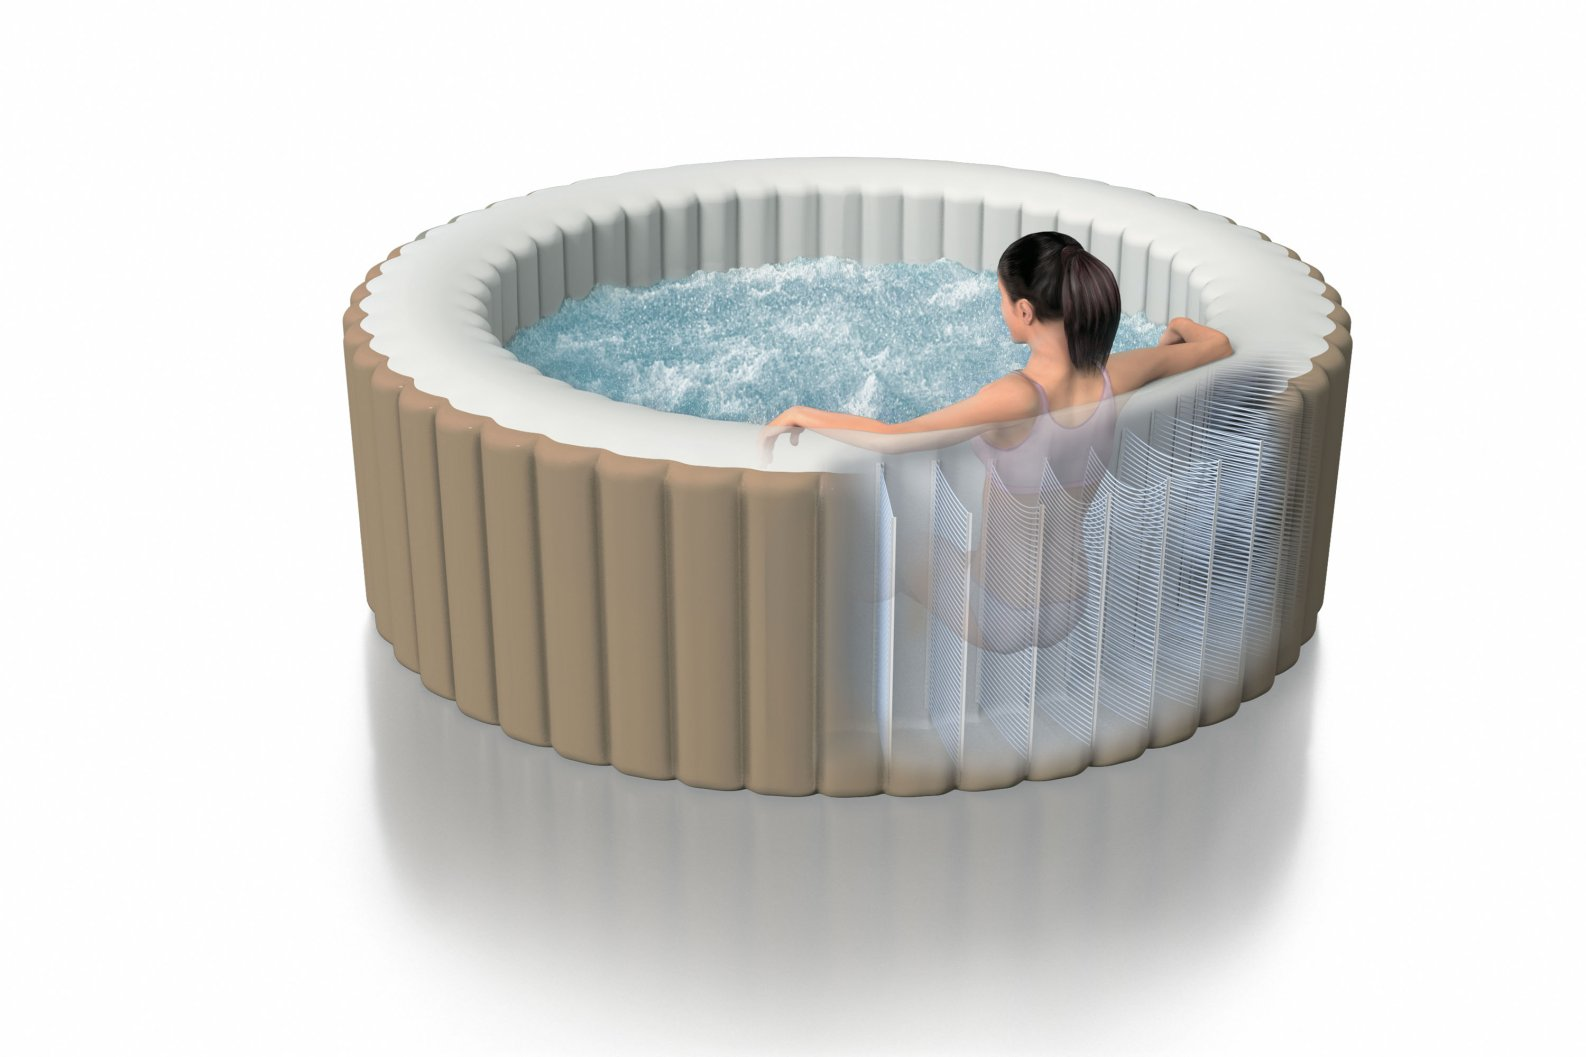 rotex intex pure bubble spa idromassaggio piscina fuori. Black Bedroom Furniture Sets. Home Design Ideas